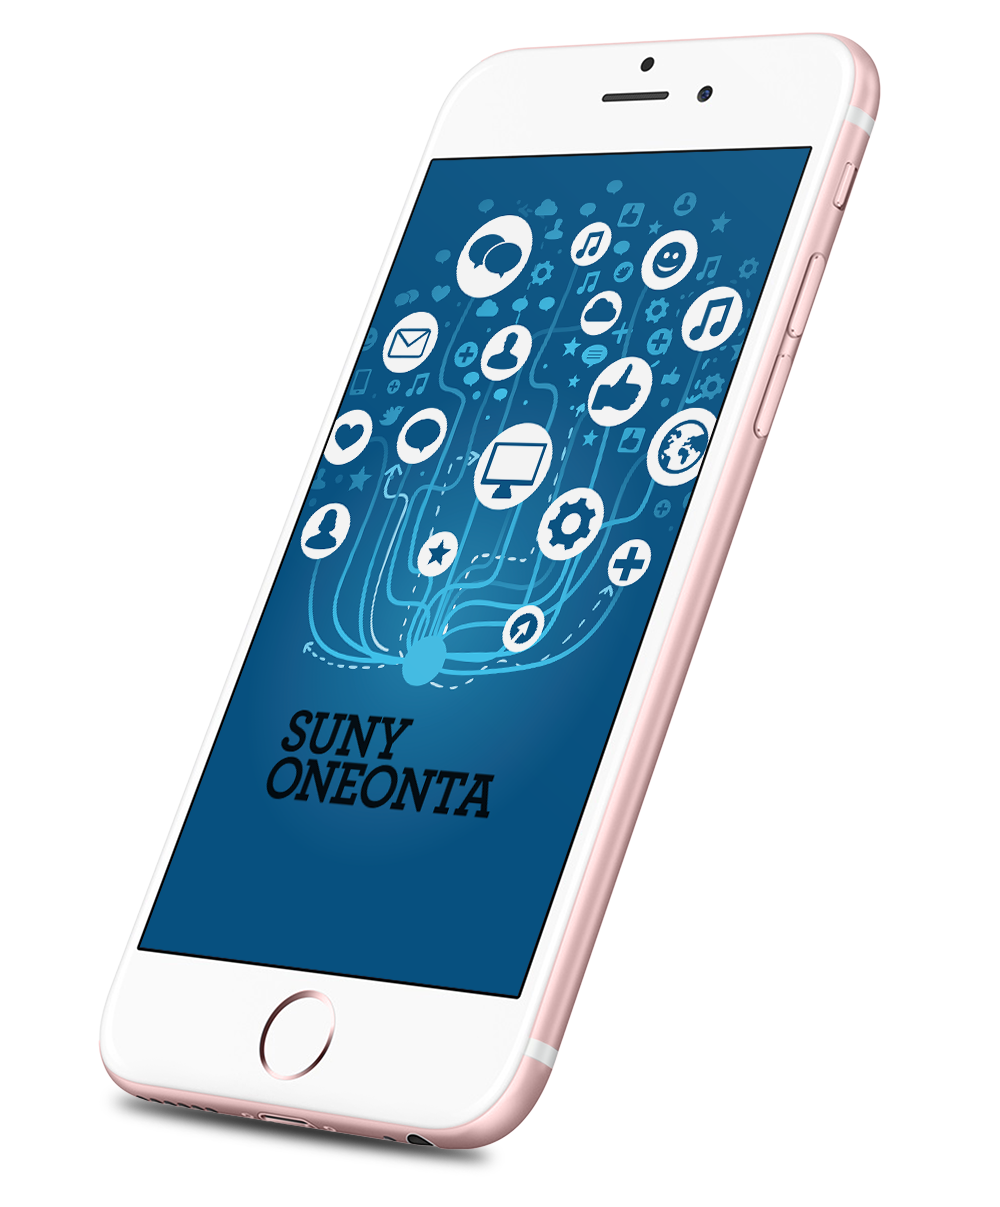 Suny Oneonta logo with digital learning icons on an iPhone